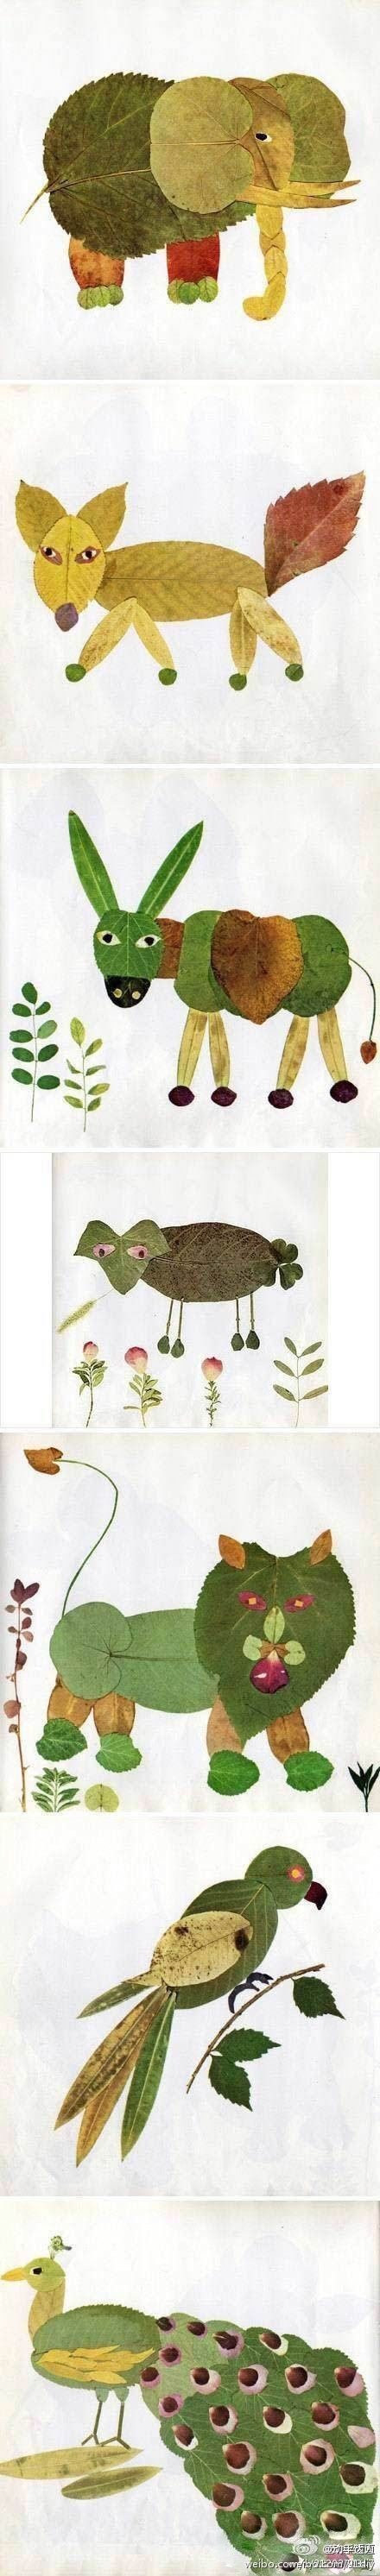 creative kids - leaf animals